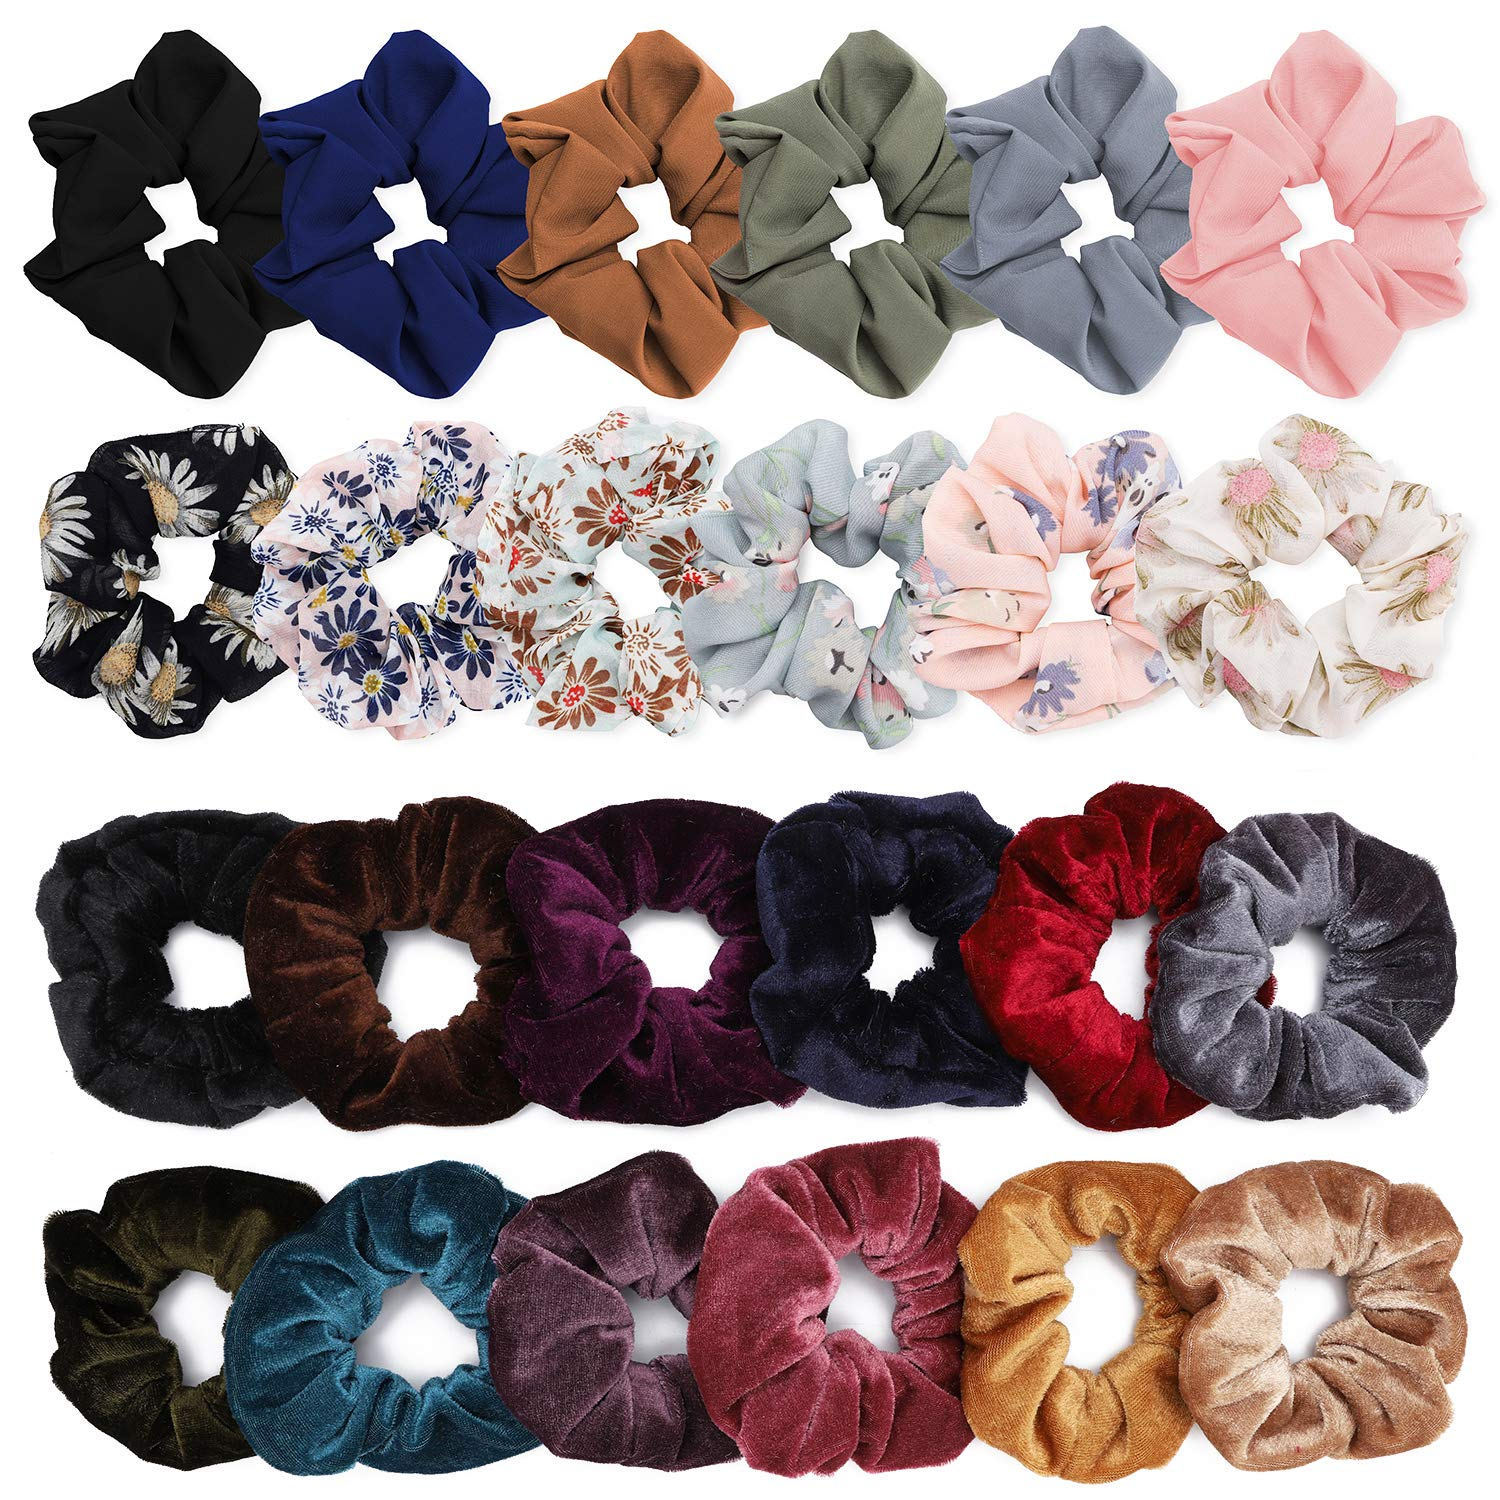 YESHM 24Pcs Chiffon Flower Hair Scrunchies, Velvet Colorful Hair Ties, Elastic Hair Bobbles for Ponytail Holder, Hair Accessories Ropes Scrunchie for Women & Girls, Mixcolor Flower Printed & Solid Color WATINC